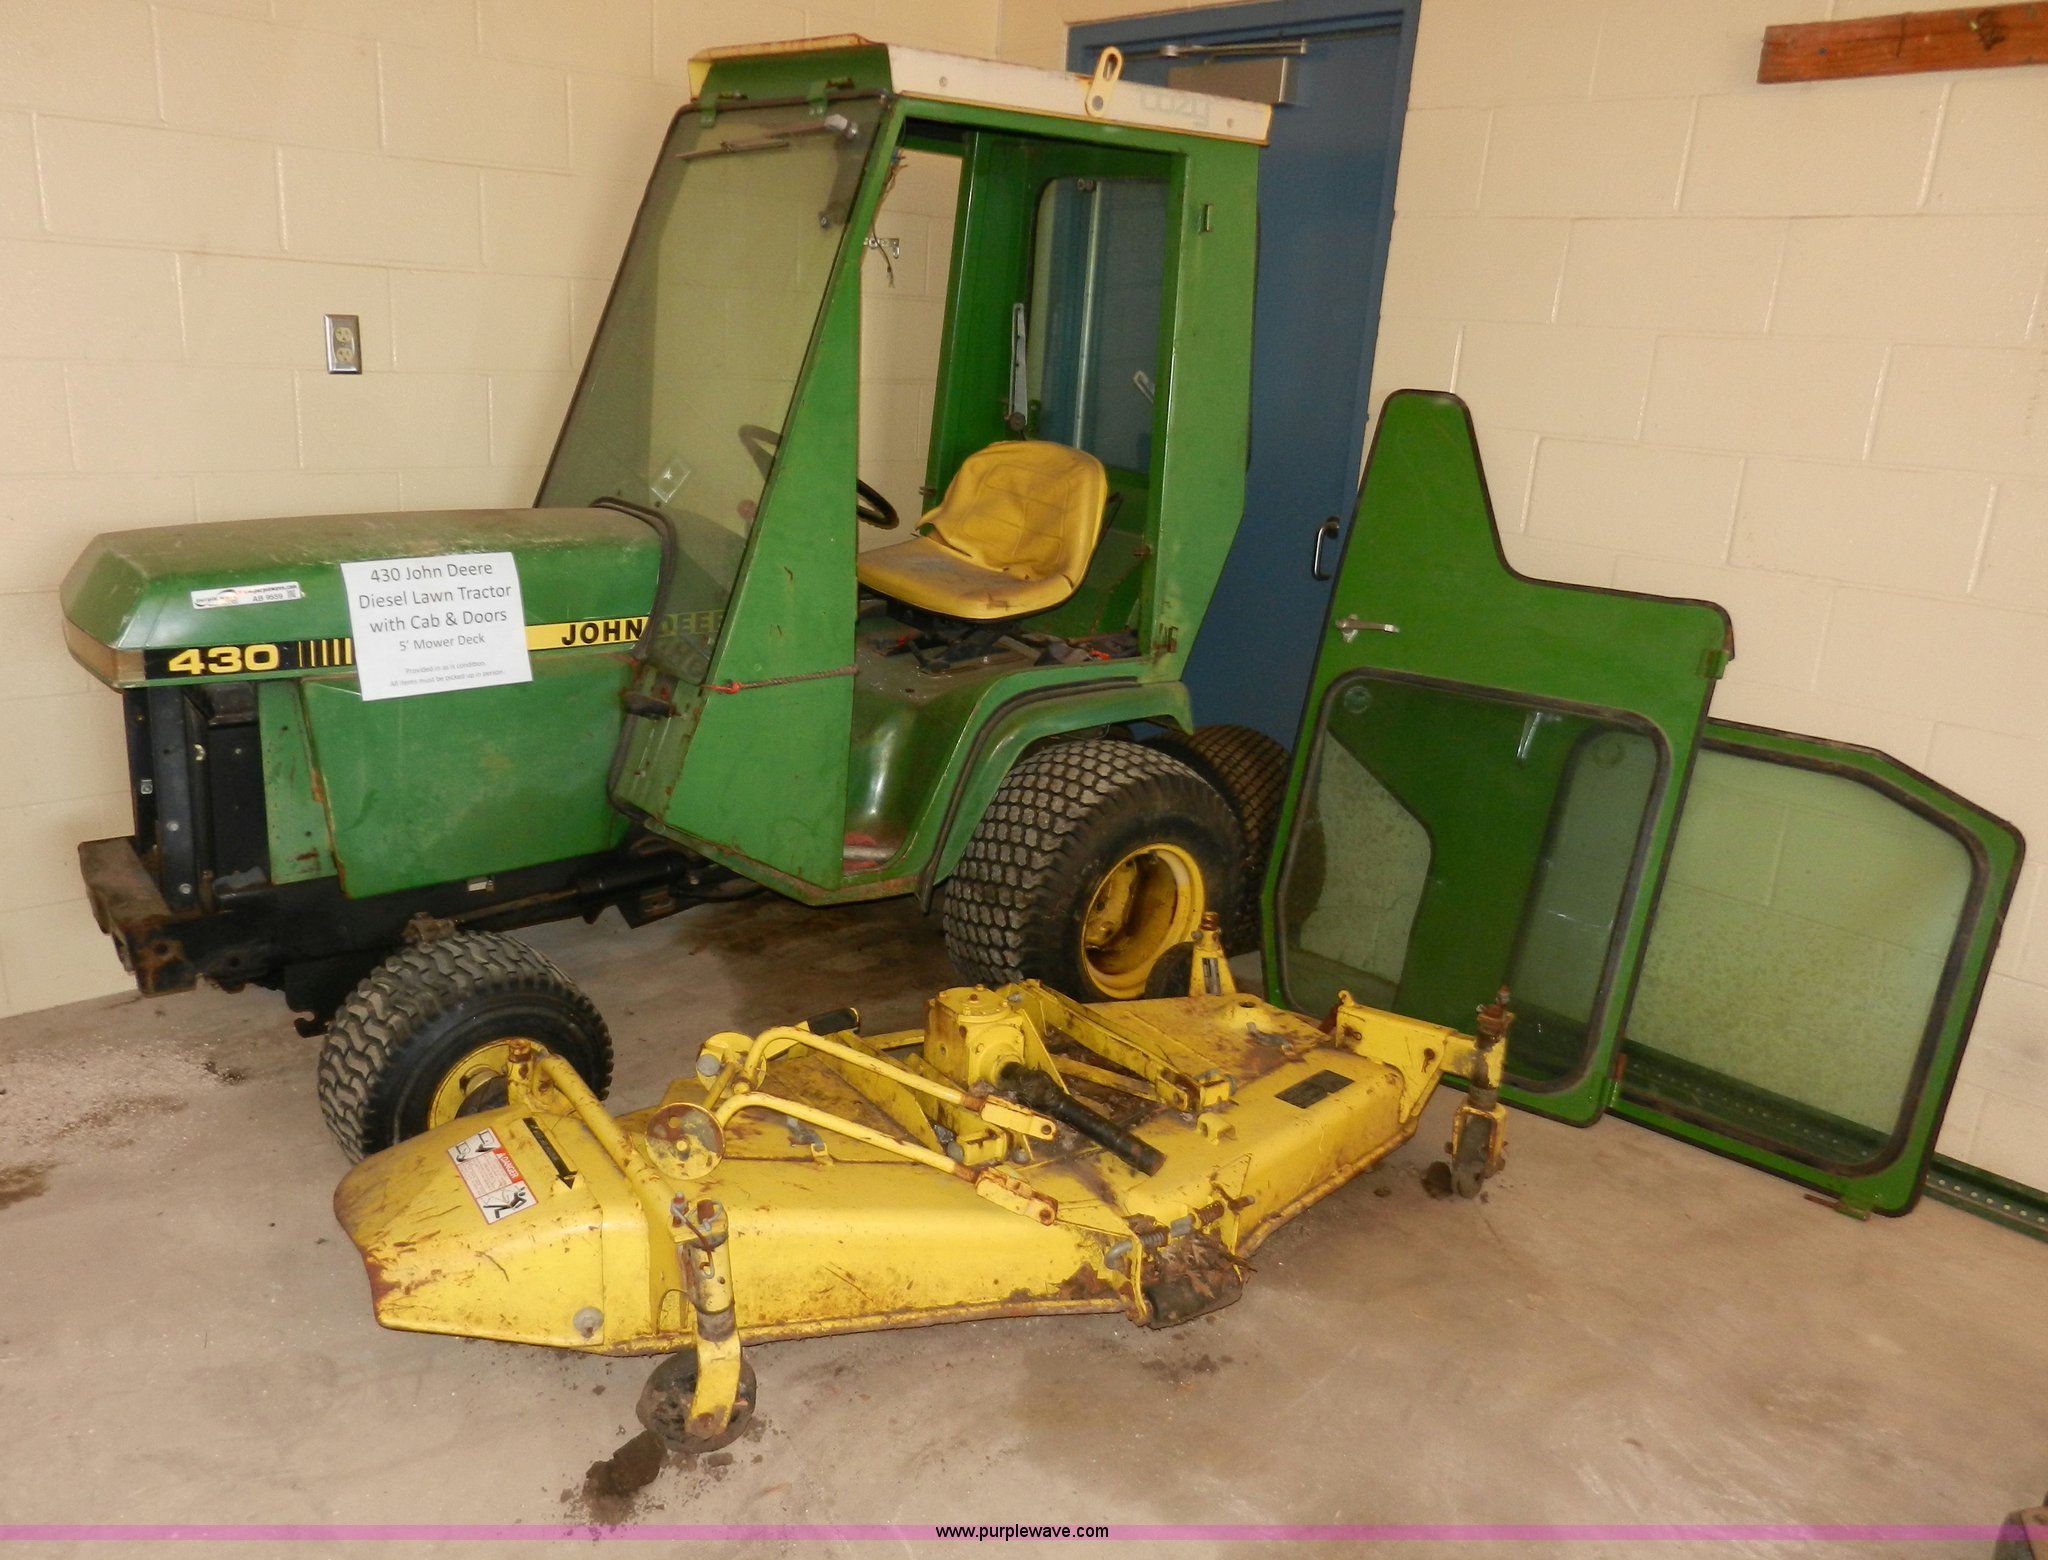 John Deere 430 Lawn Tractor Item Ab9559 Sold March 5